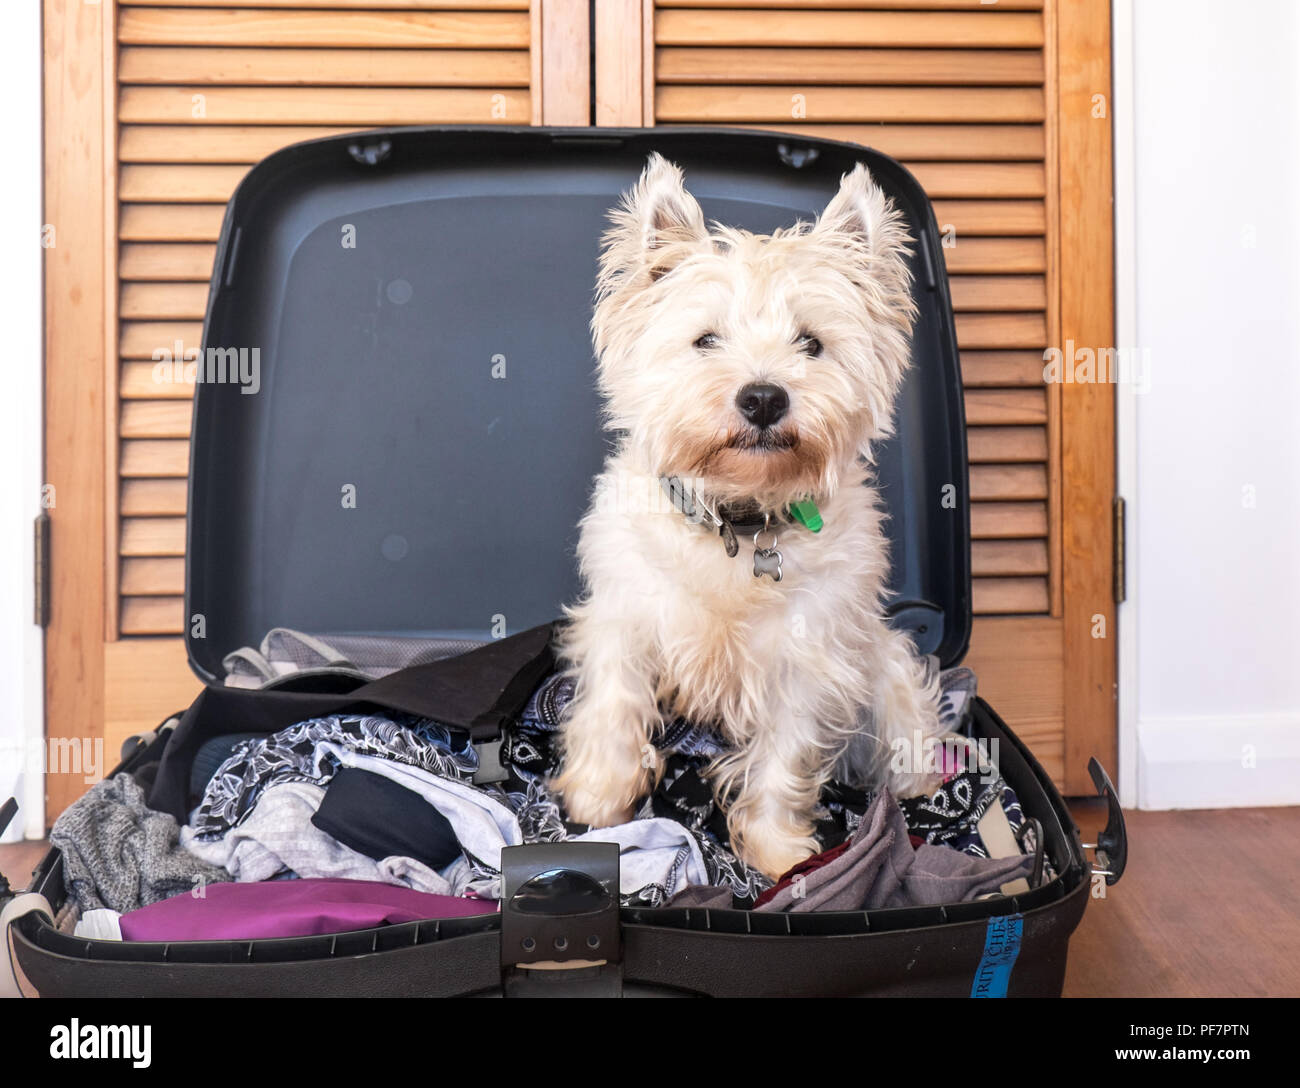 Pet friendly accommodation: scruffy west highland white terrier westie dog in packed suitcase luggage - Stock Image